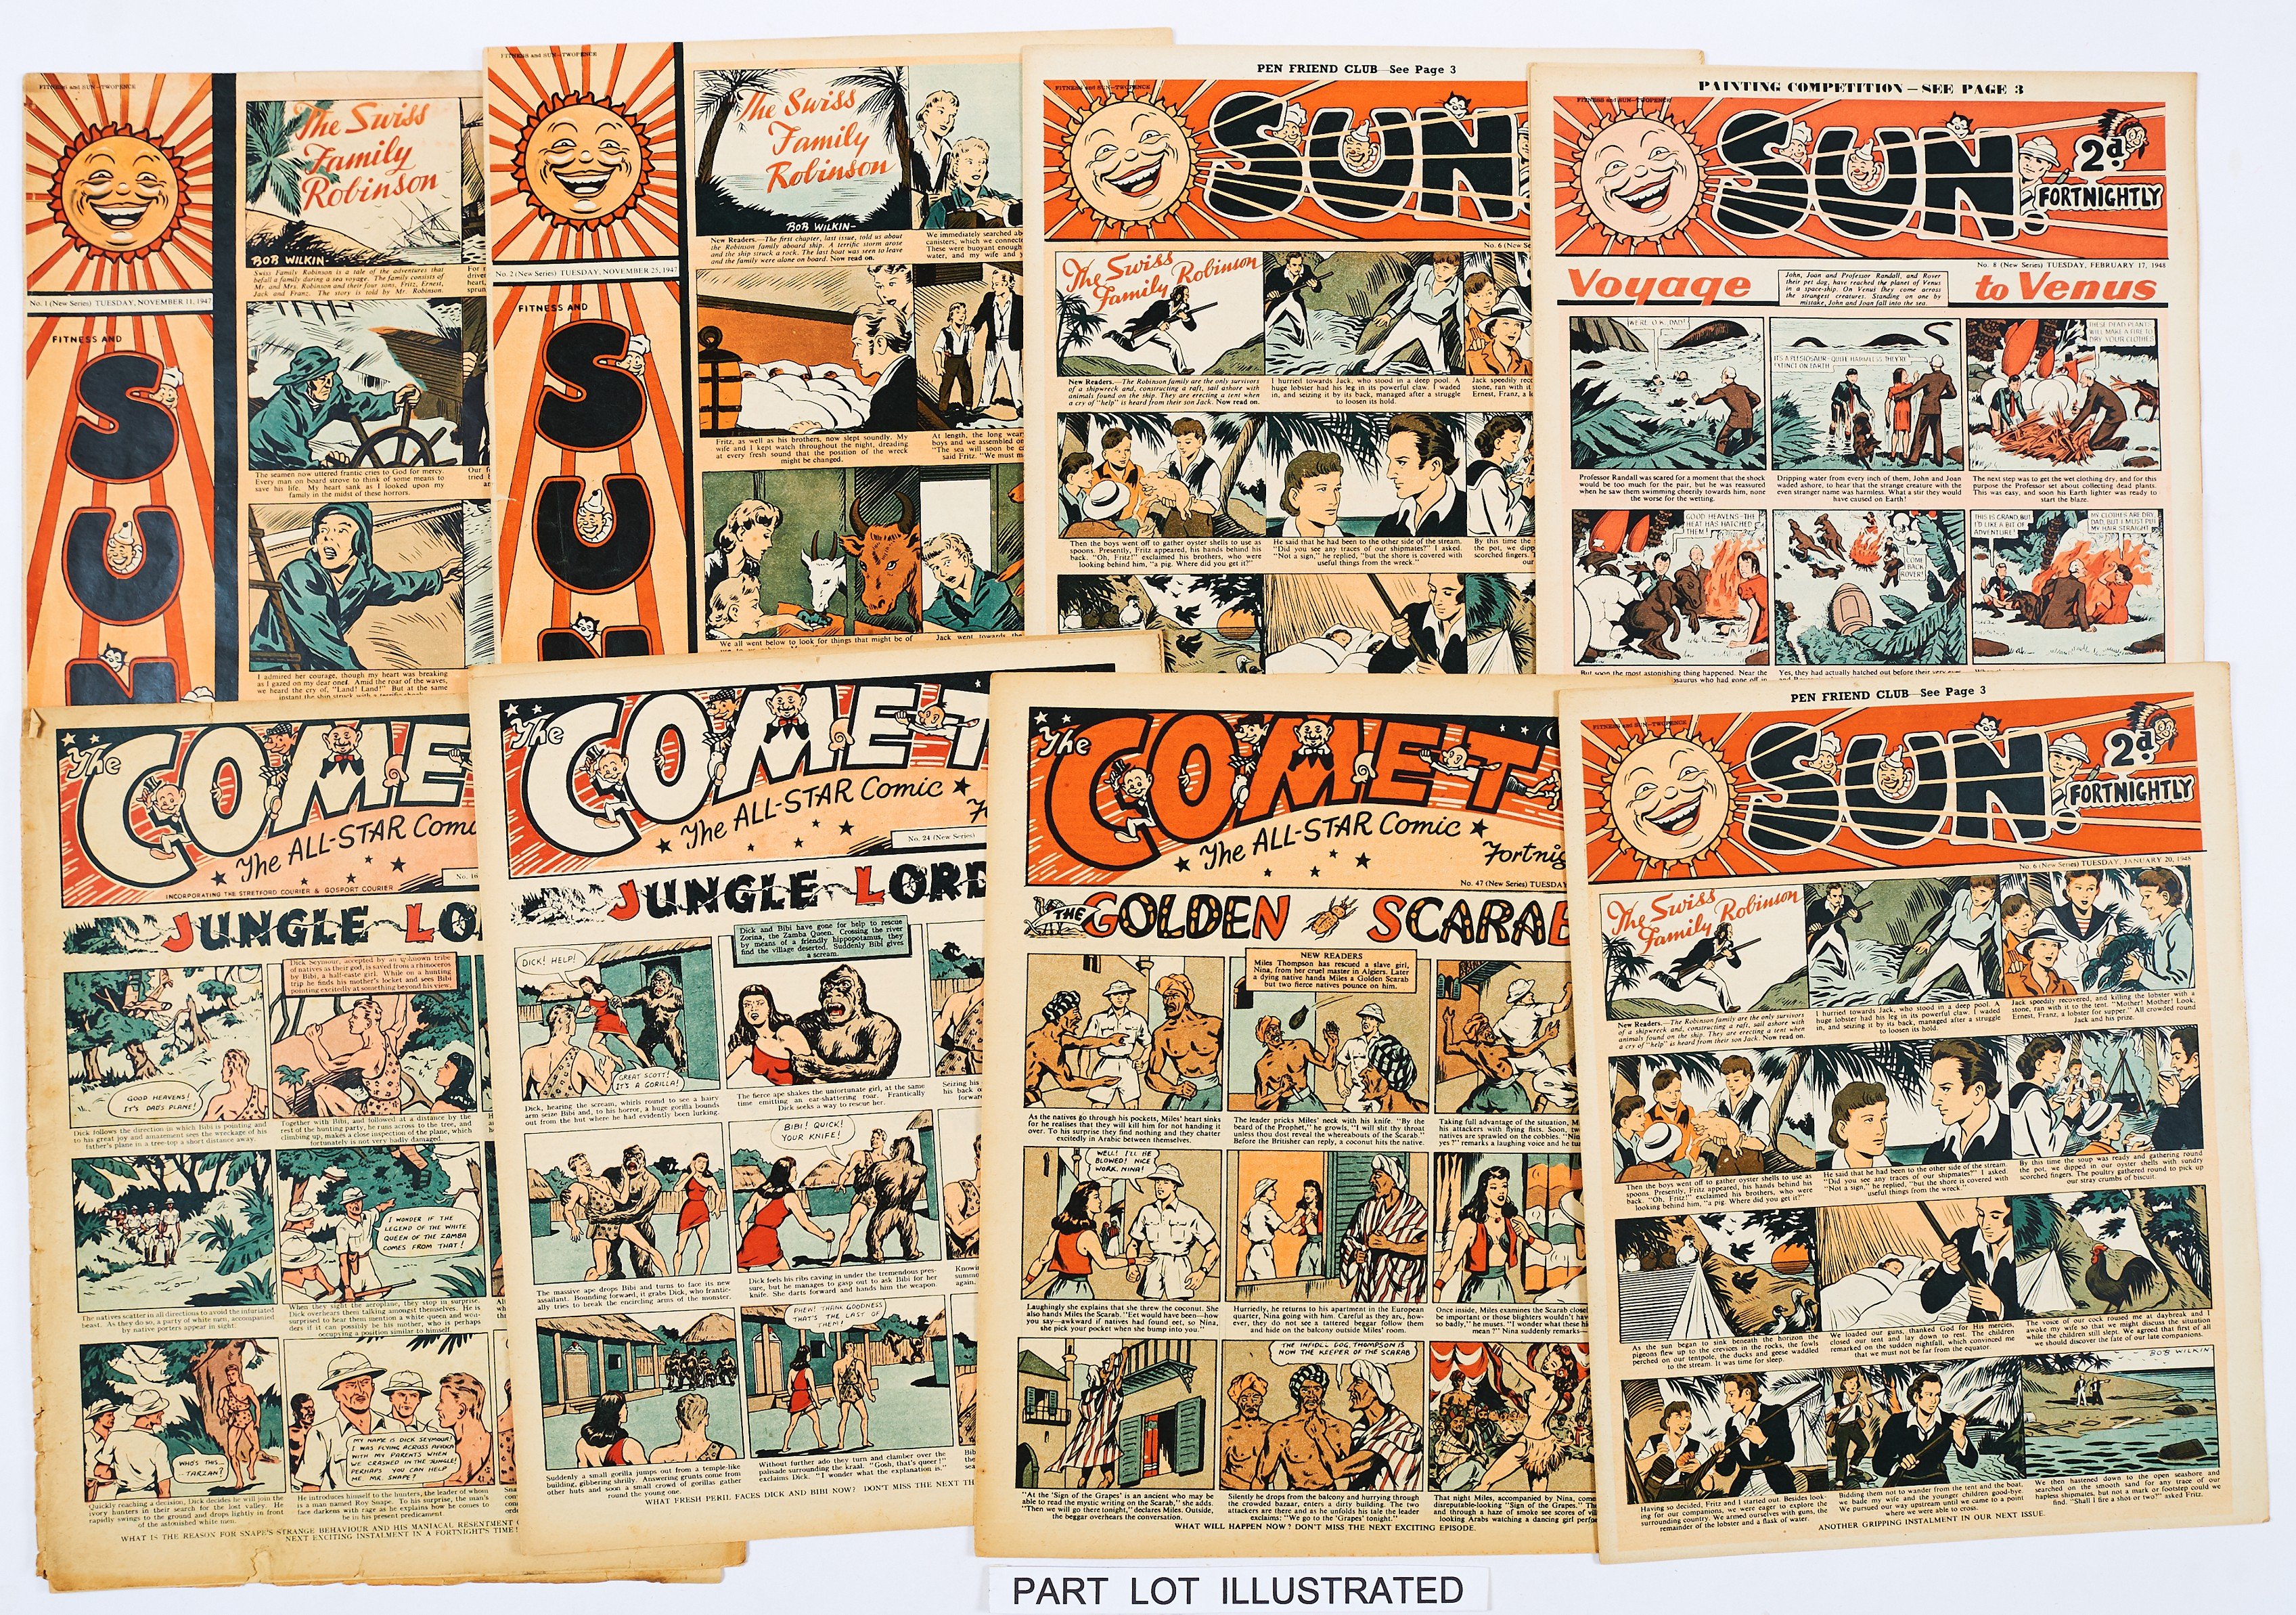 Lot 42 - Fitness and Sun/Sun (1947-48) 1, 2, 5, 6 (x2), 7-10, 16, 17, 20, 43, 74. With Comet (1947-51) 14,